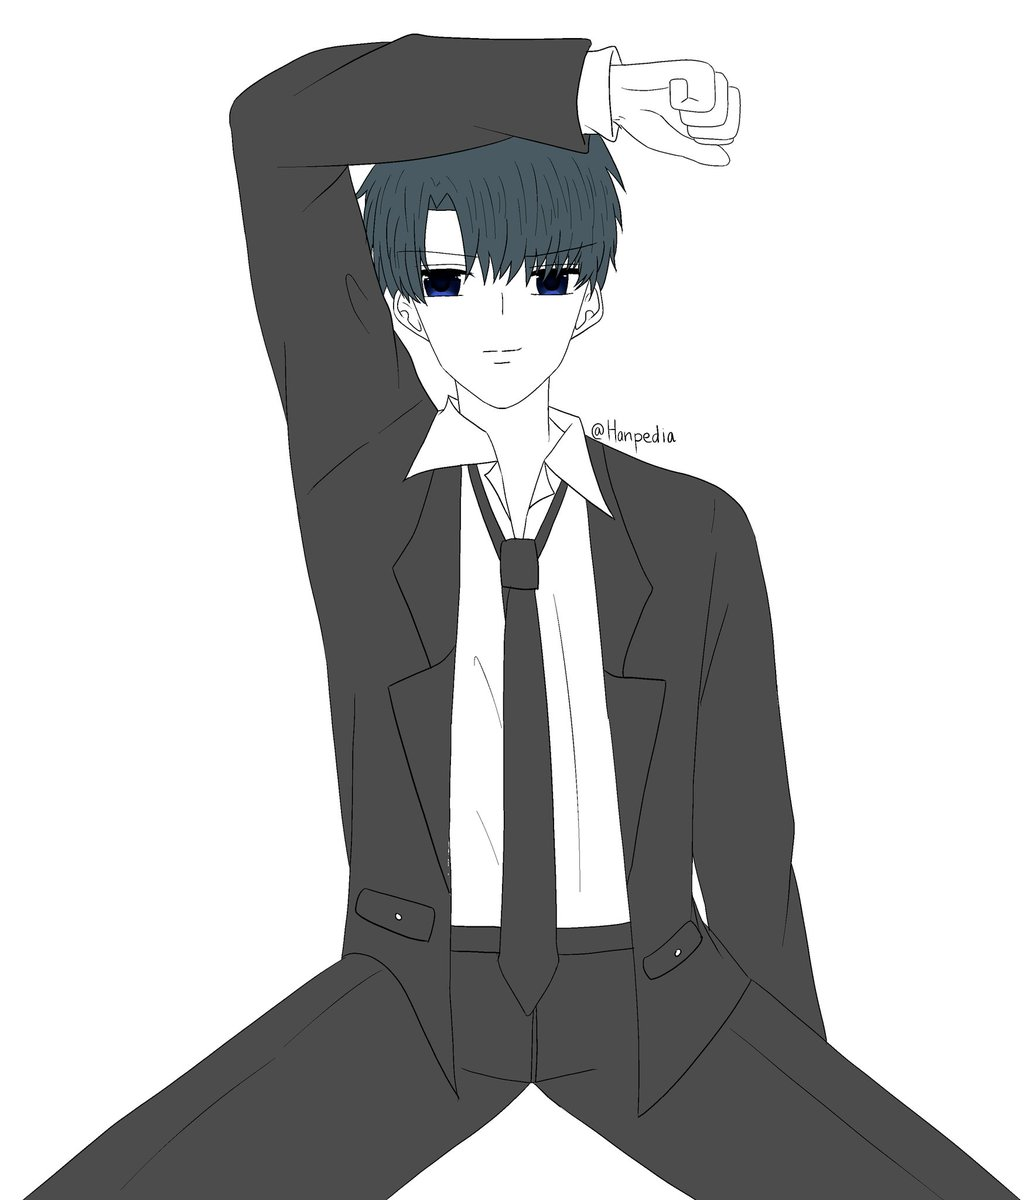 Now playing  EXO - The Eve  #leviackerman #aot